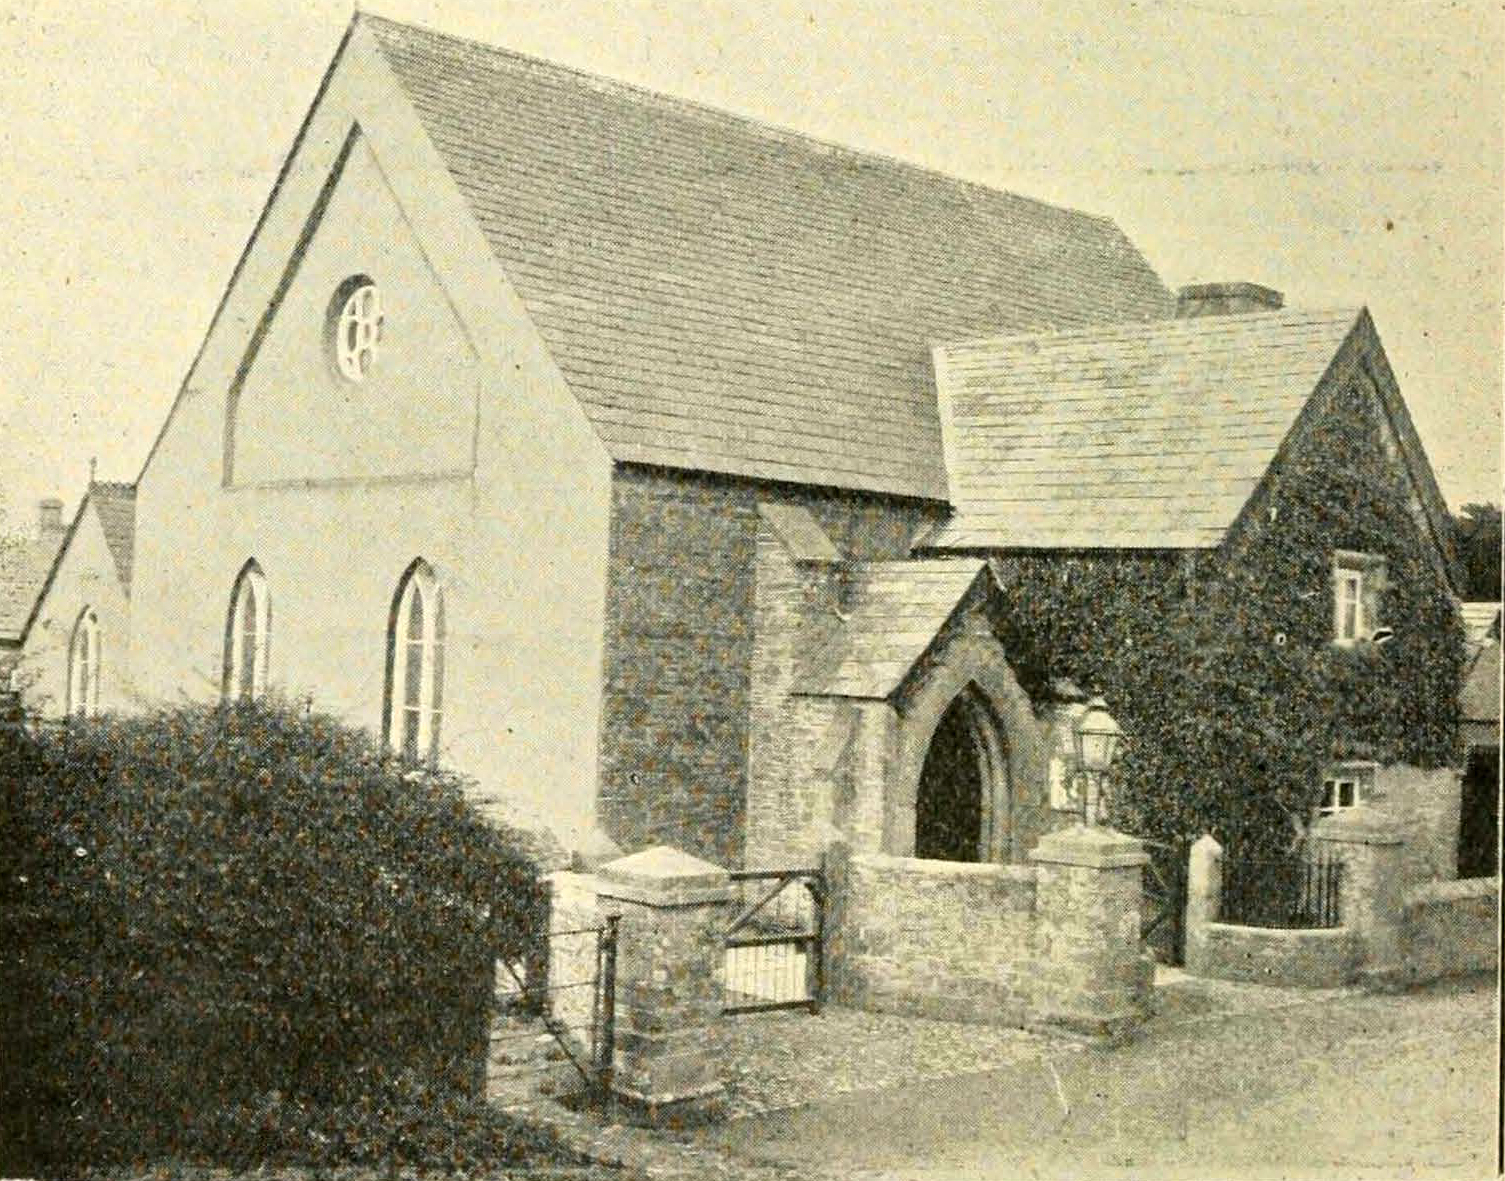 Trevadlock Chapel in 1900